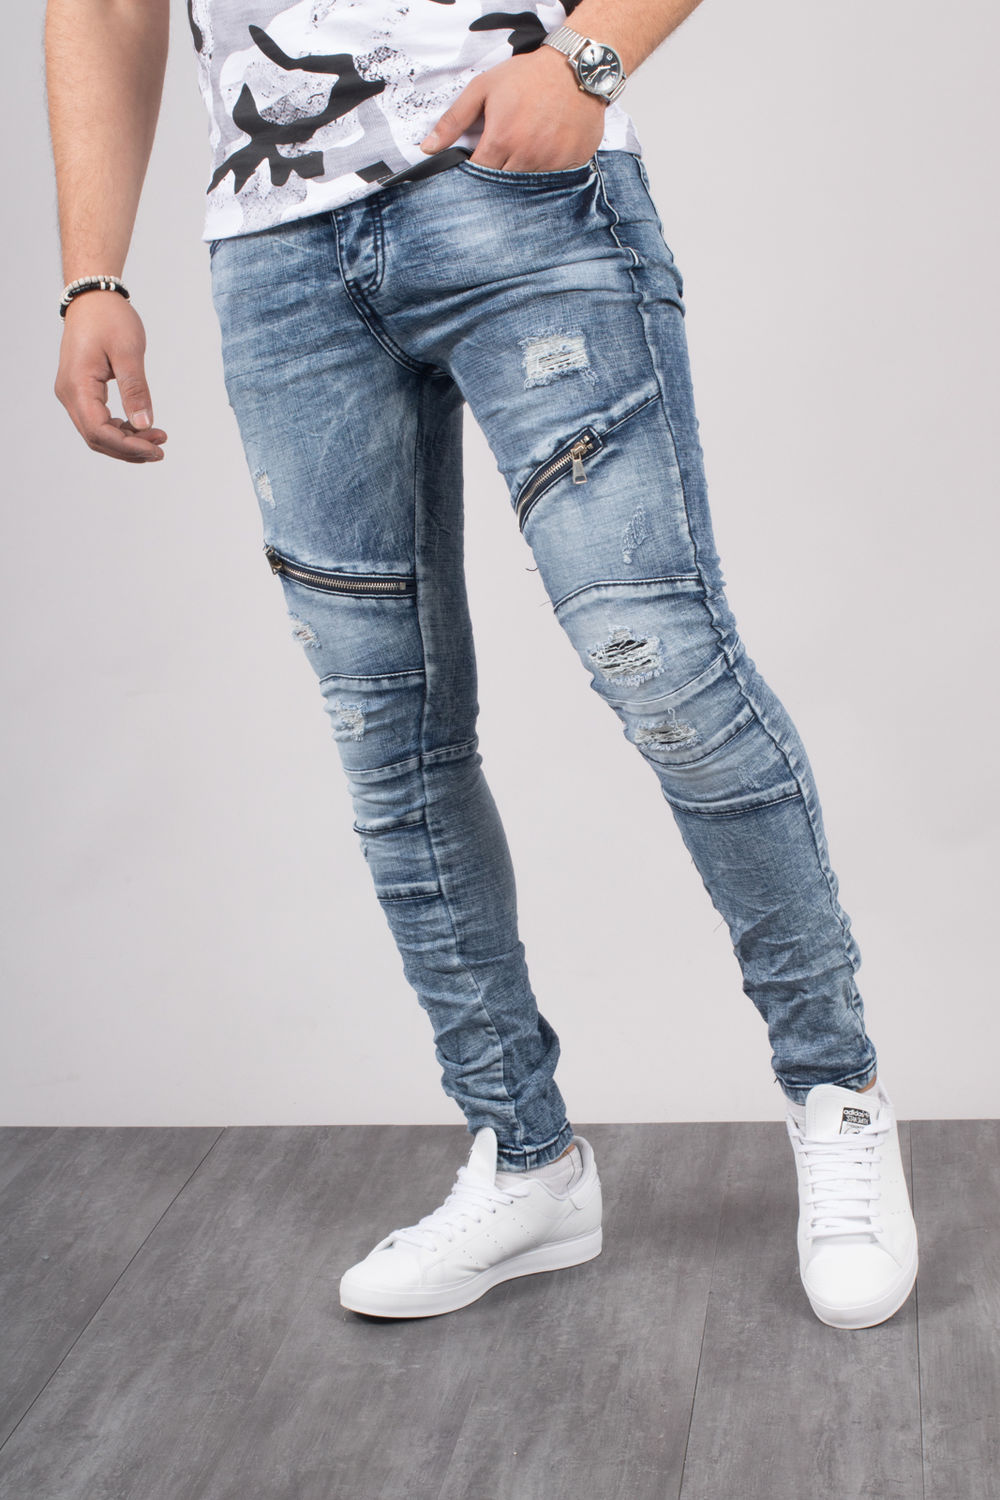 Jean Slim Homme Swag Stunning Nike Menus Aw French Terry Cuff